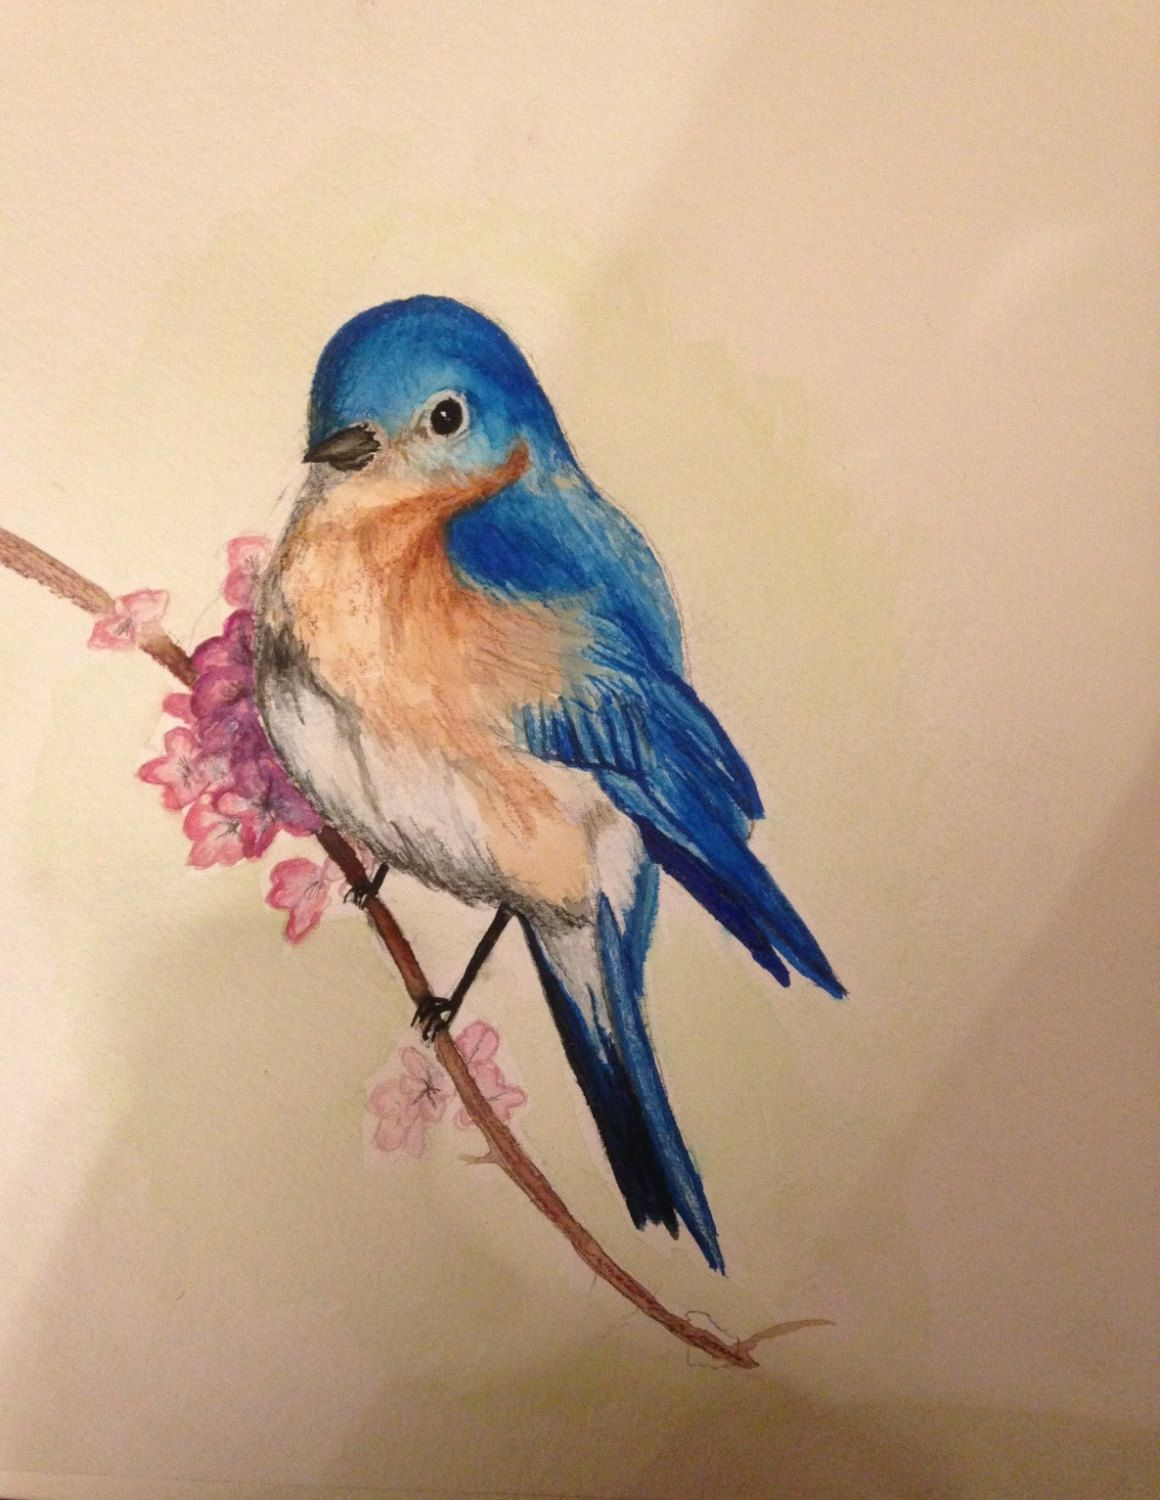 3bdb62f0a Blue Bird Water Color Painting Print by HowMyBrownEyesSeeIt, $7.50 ...